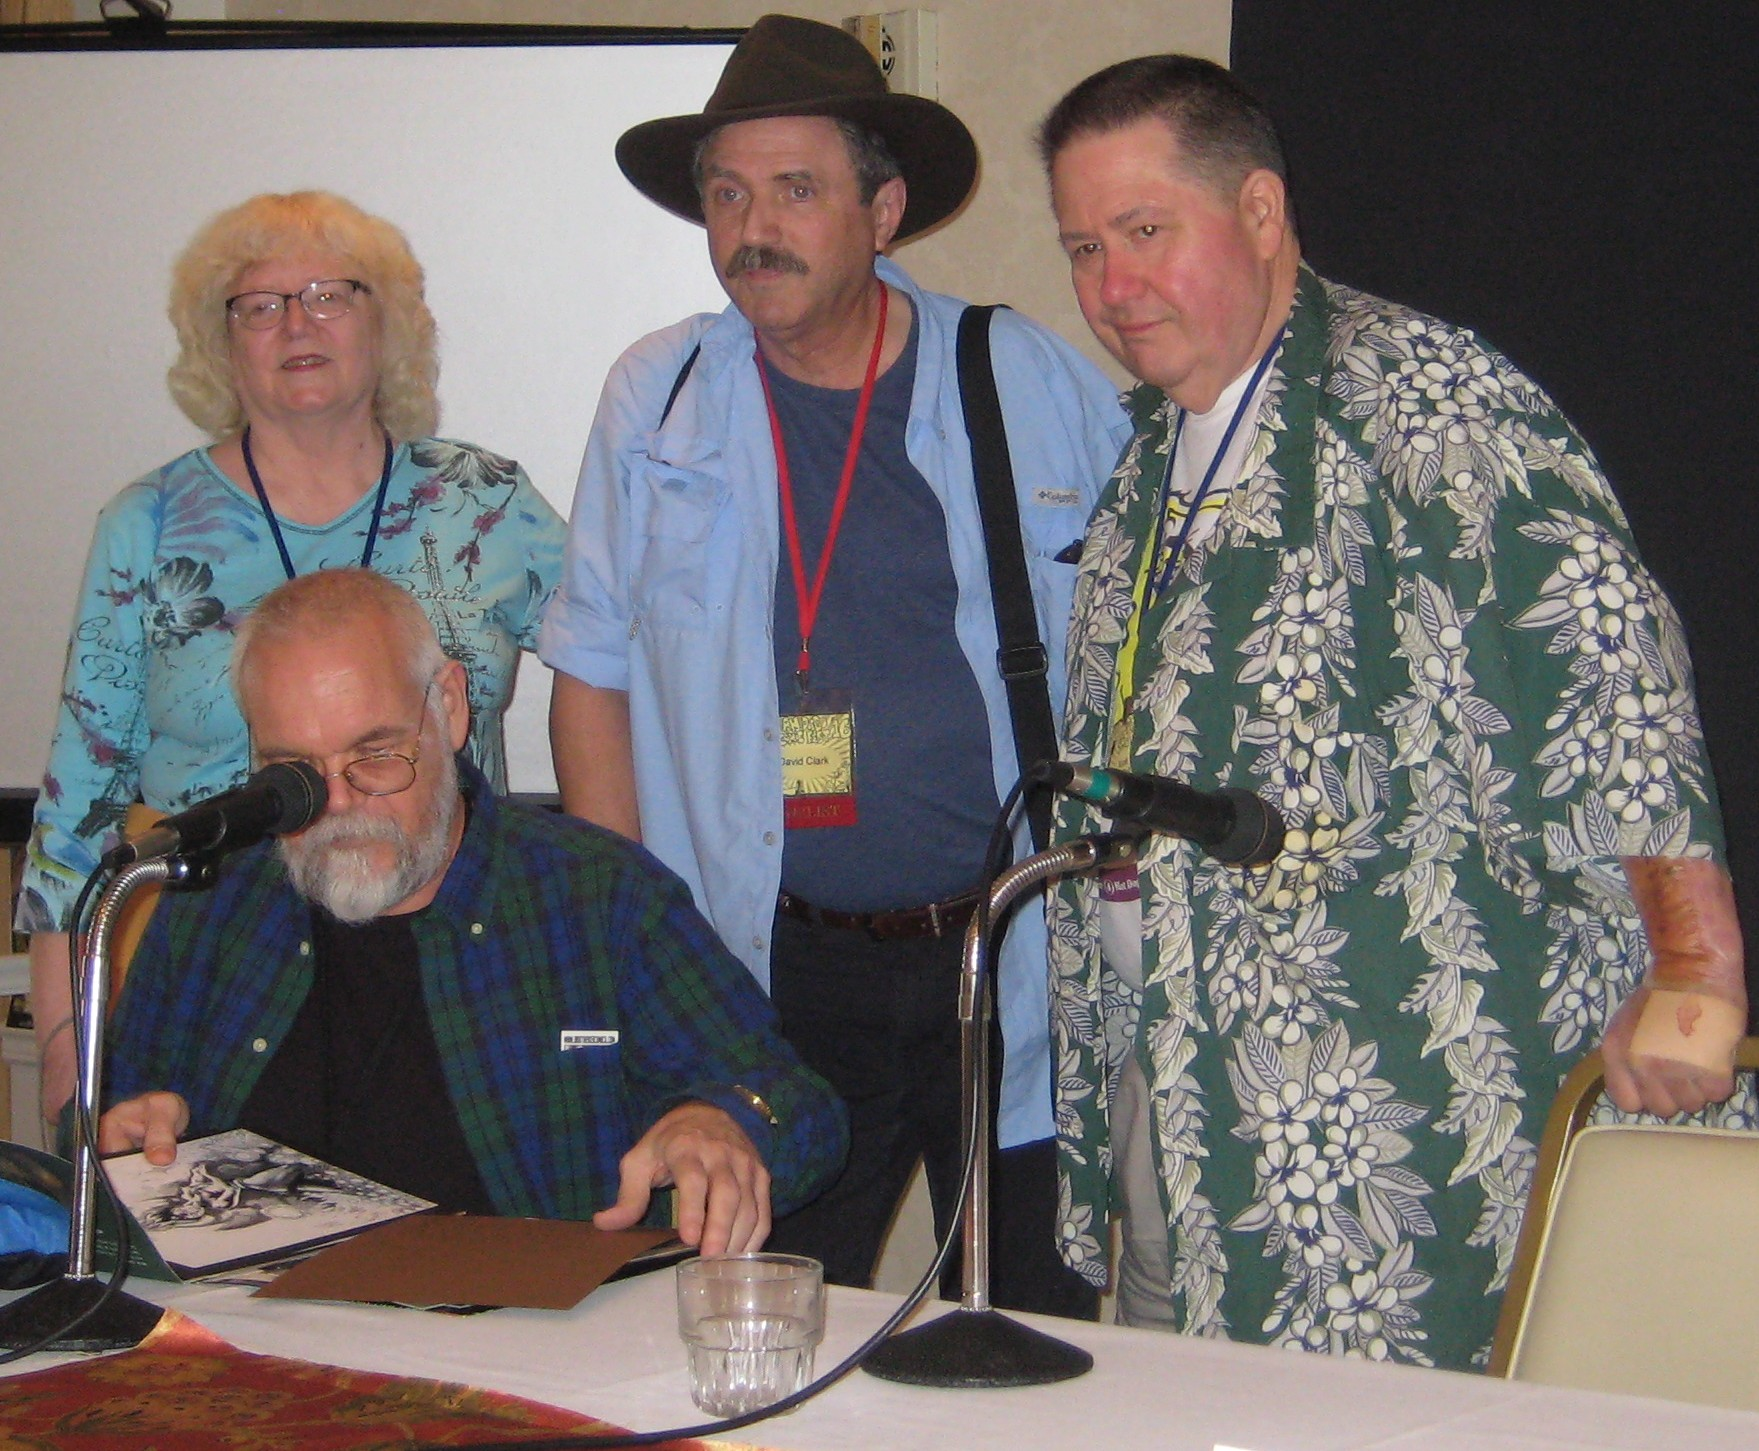 Jackie Estrada, Dennis Smith, David Clark and Scott Shaw on San Diego Fandom in the 1960s panel